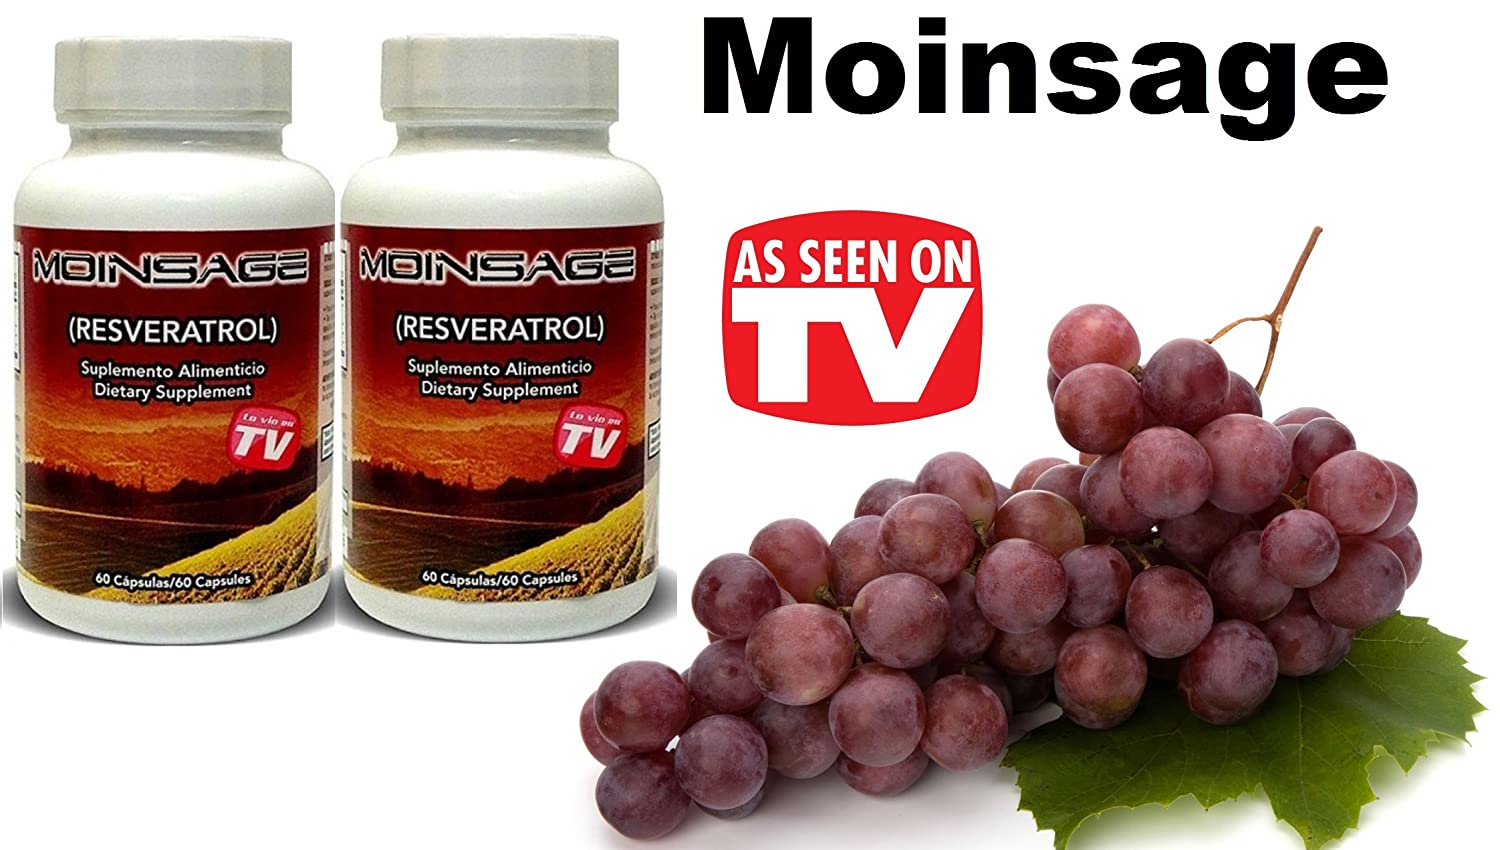 Amazon.com: 100% Original 2 Bottles Moinsage Resveratrol: Health & Personal Care